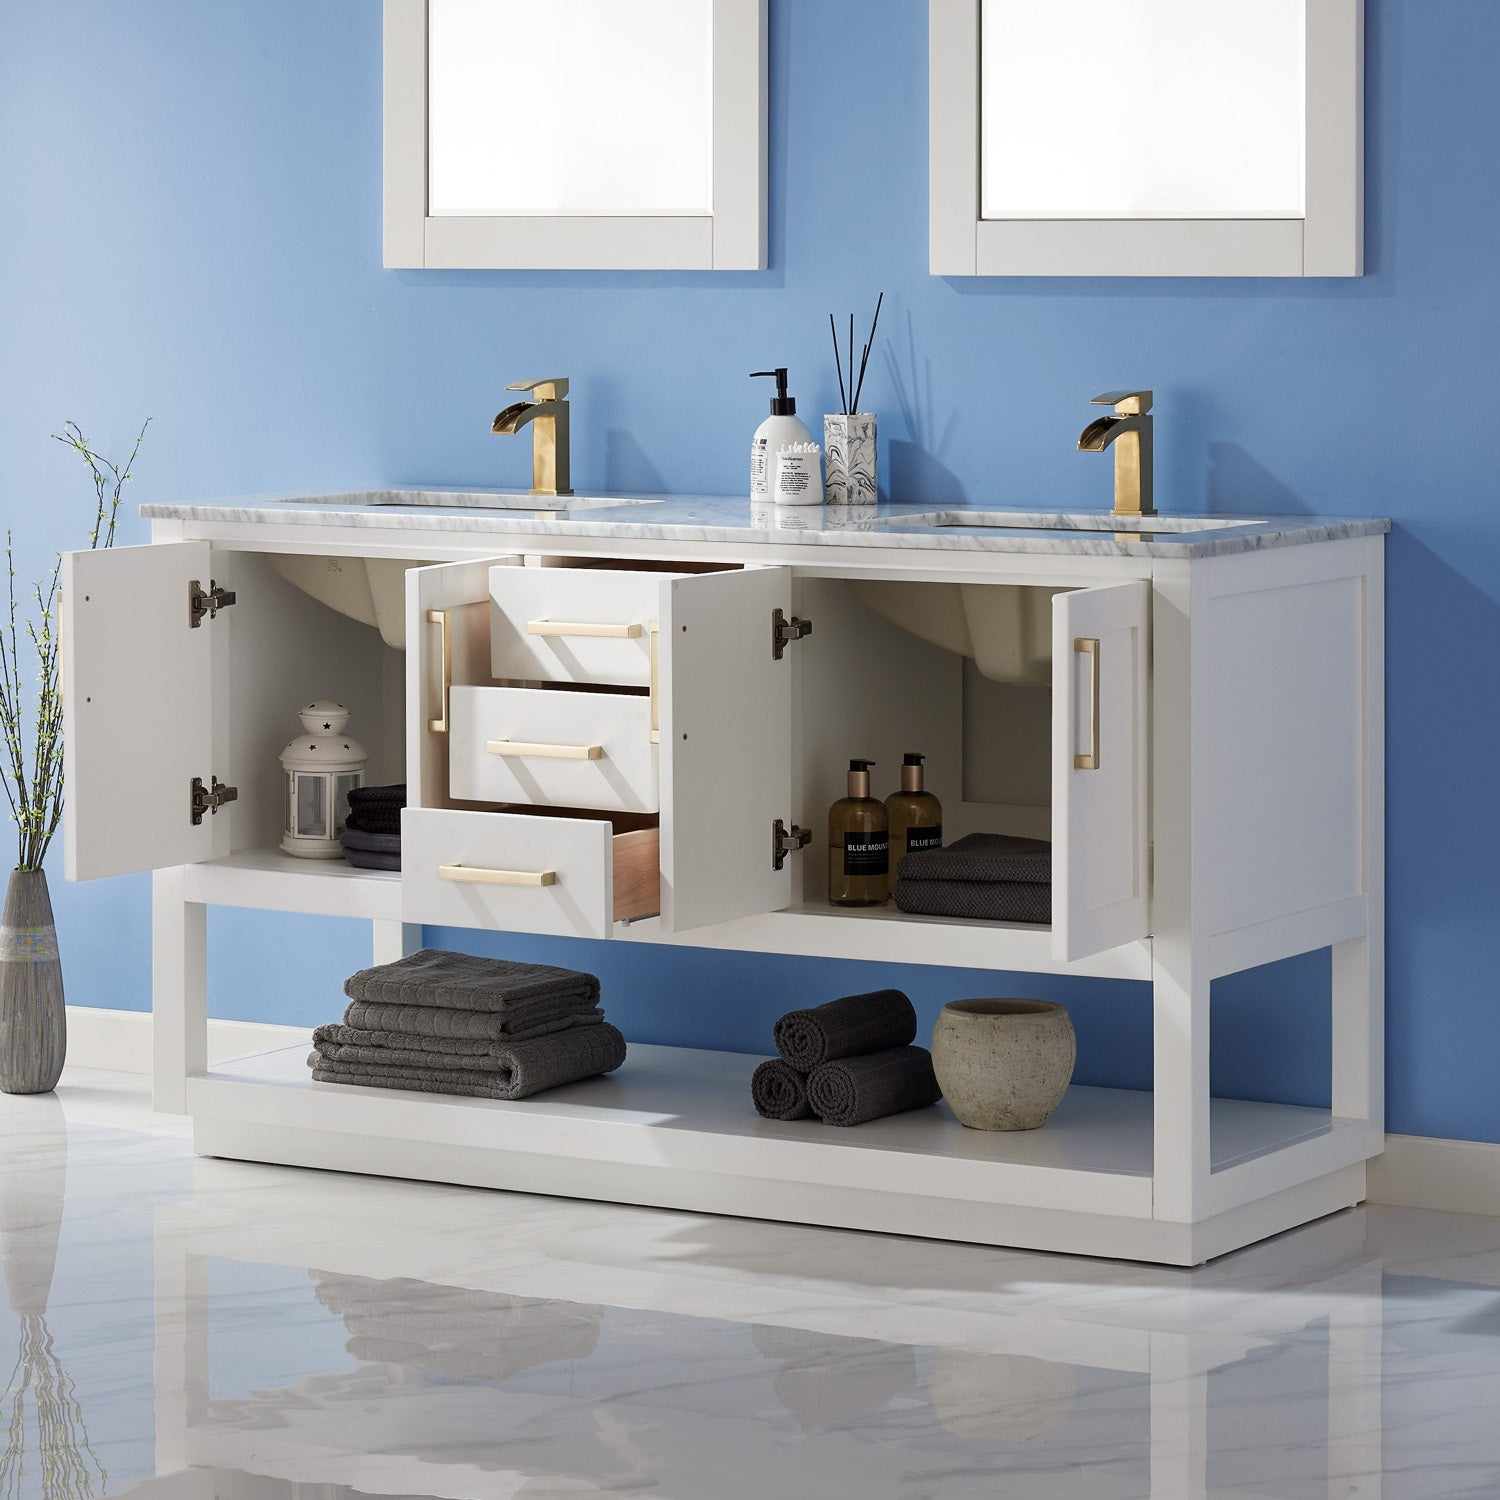 "Remi 60"" Double Bathroom Vanity Set in White and Carrara White Marble Countertop with Mirror"